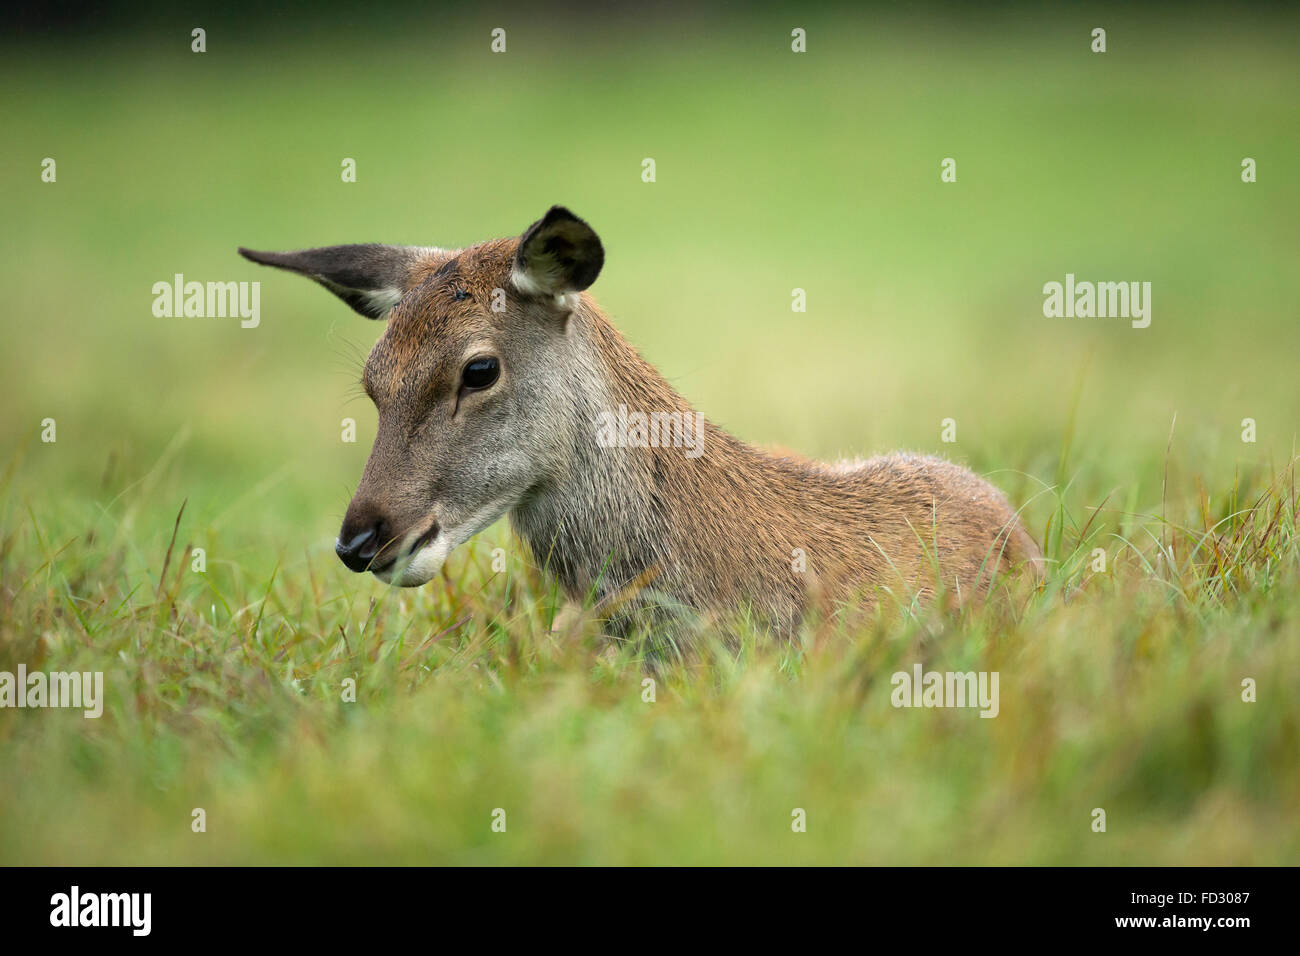 Young red deer (Cervus elaphus) laying down - Stock Image